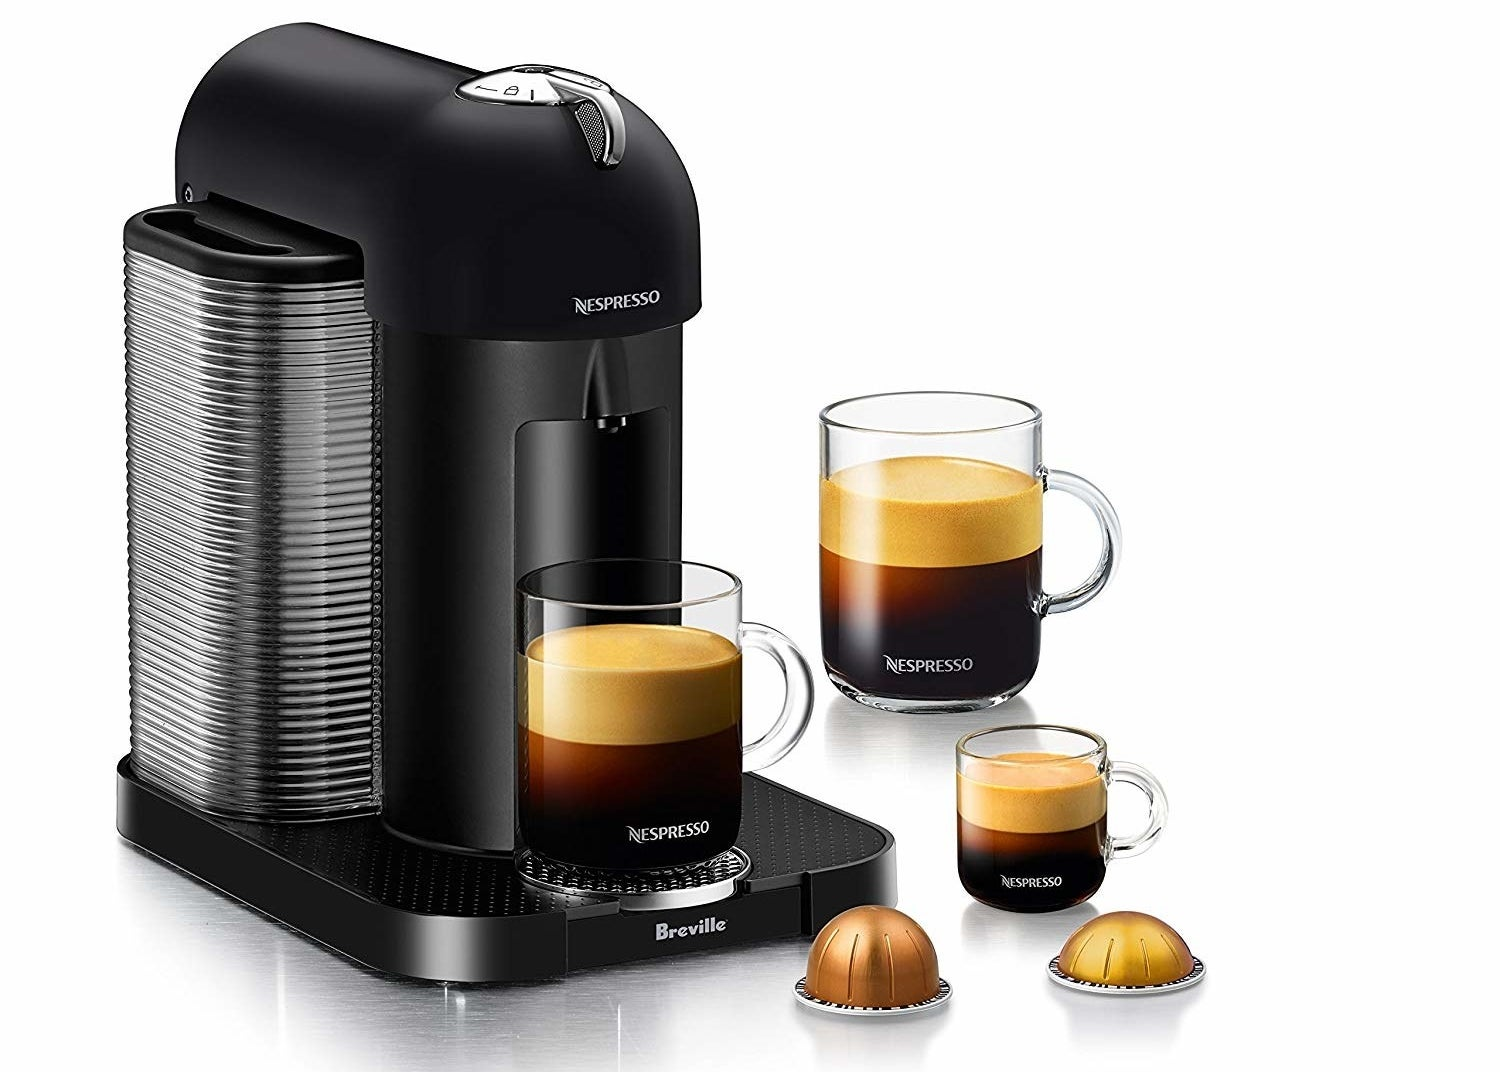 The black nespresso machine with mugs showing the three drink sizes